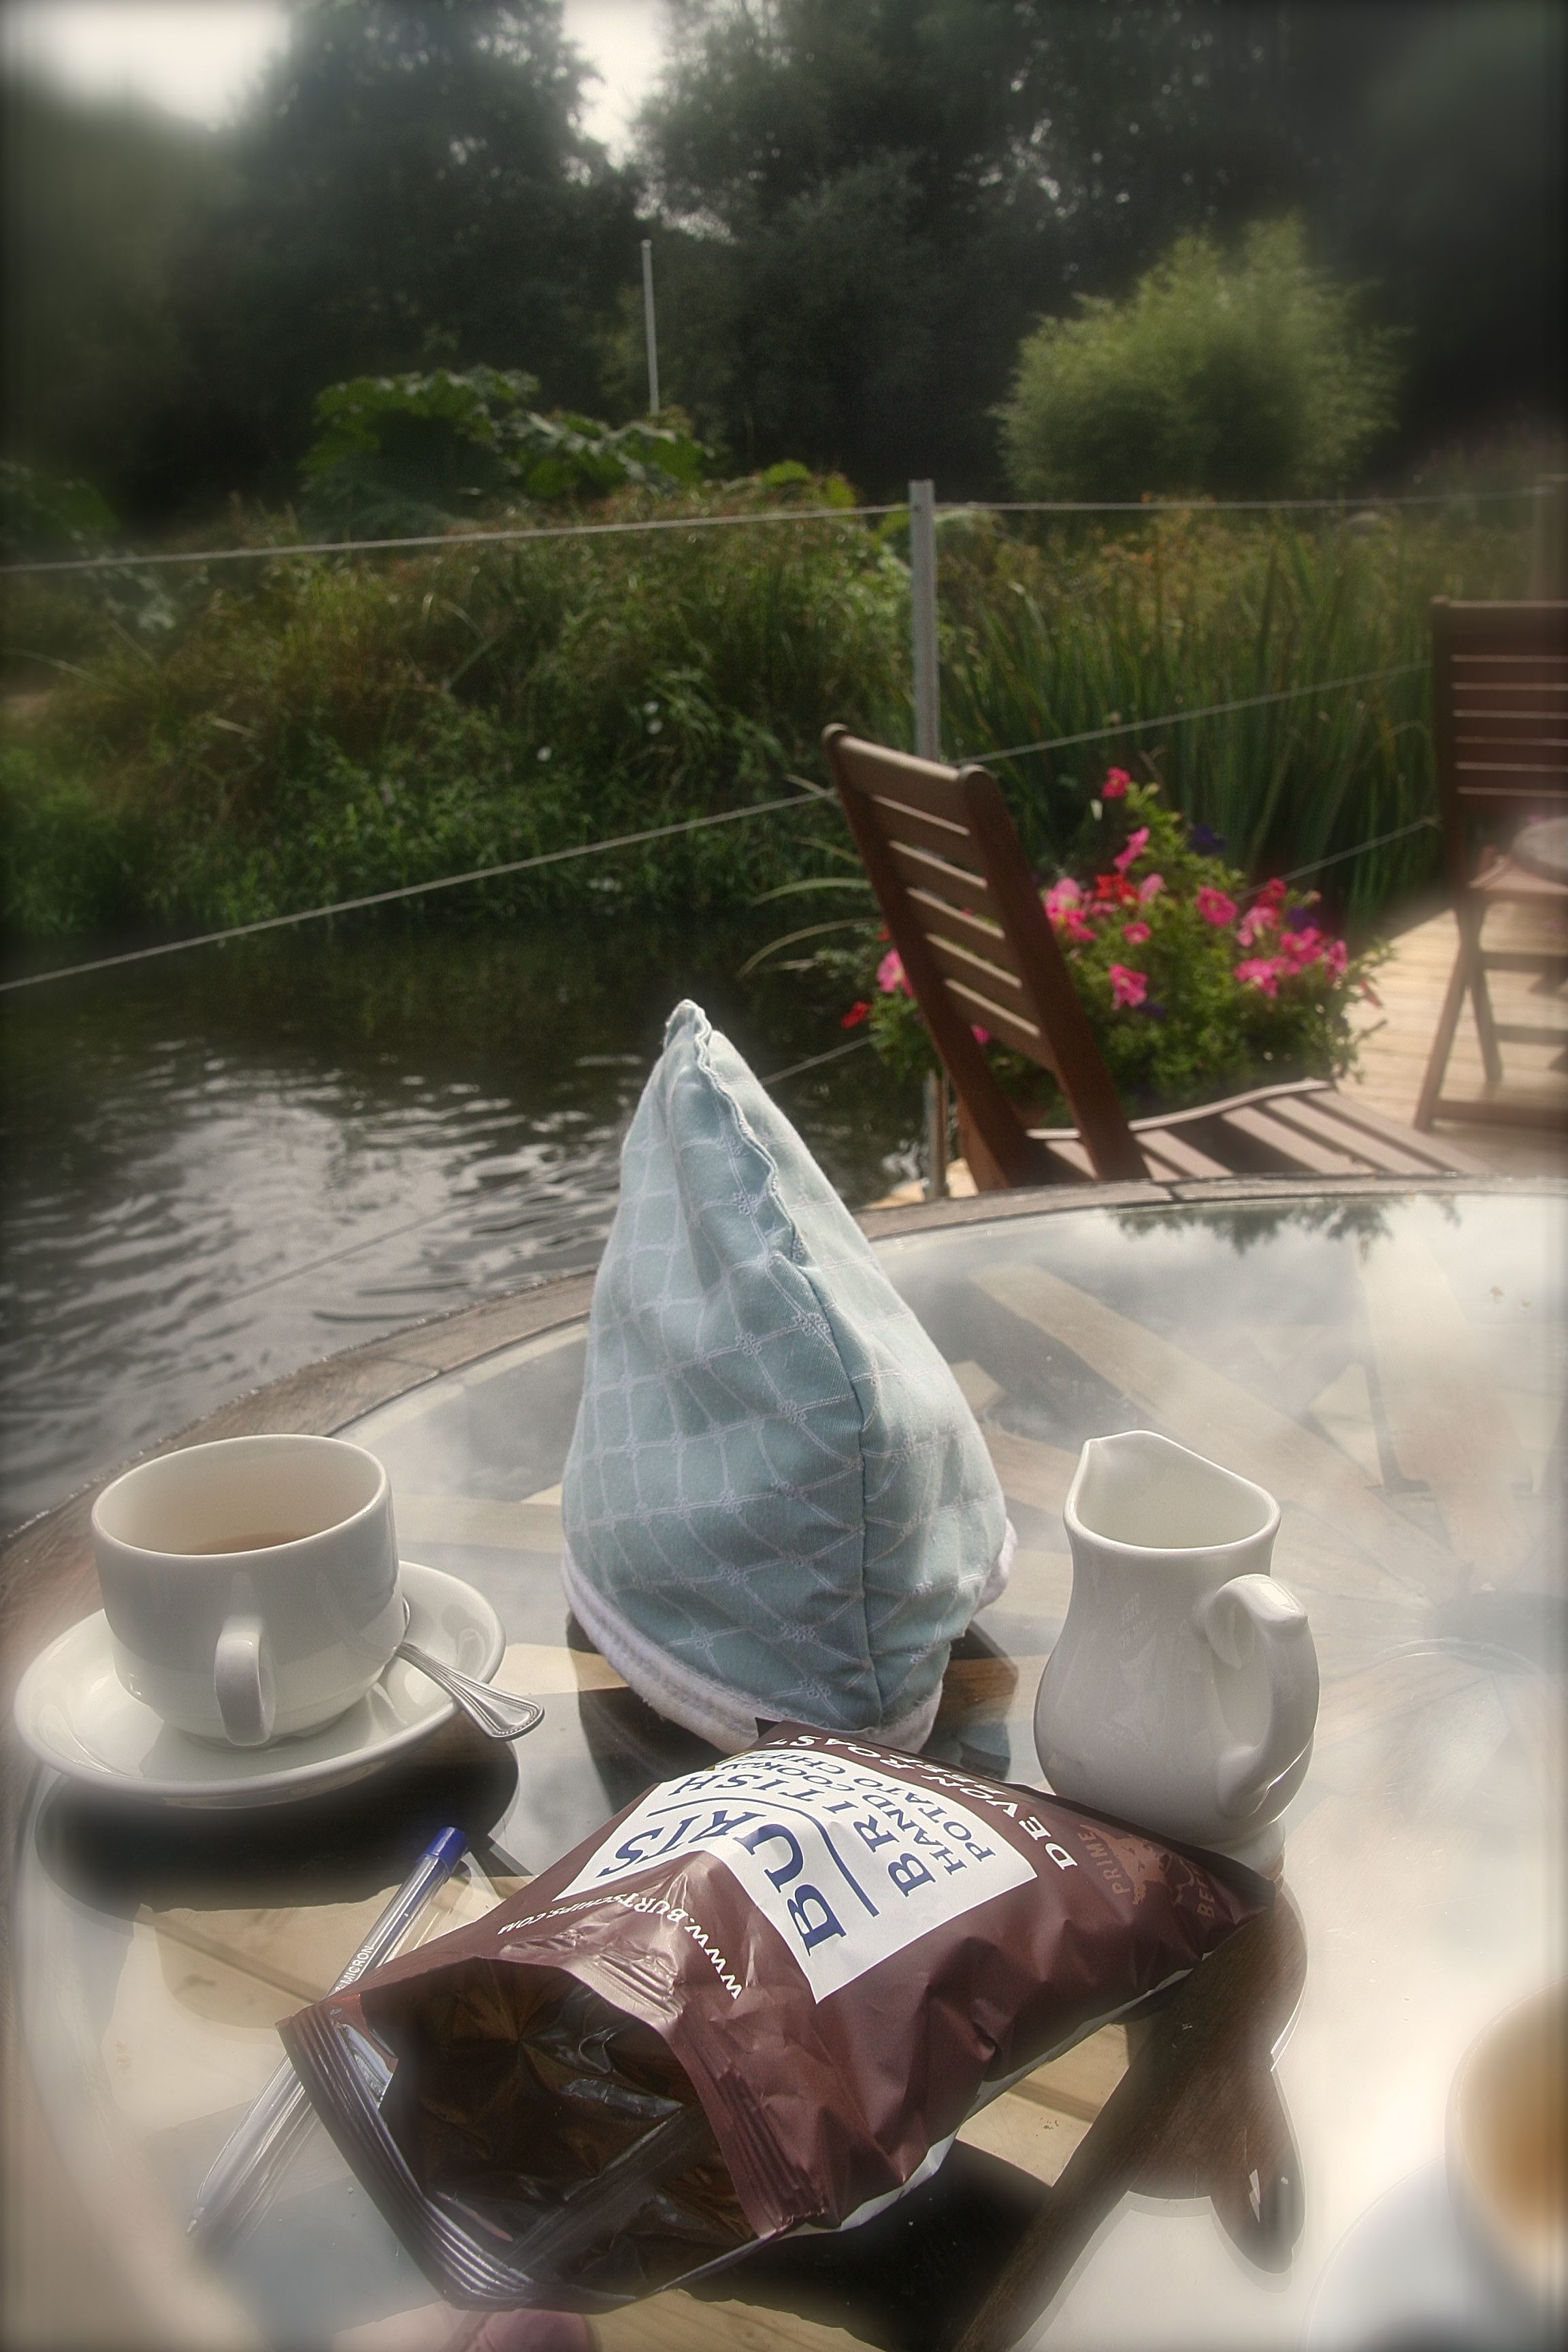 Afternoon tea at Blakewell